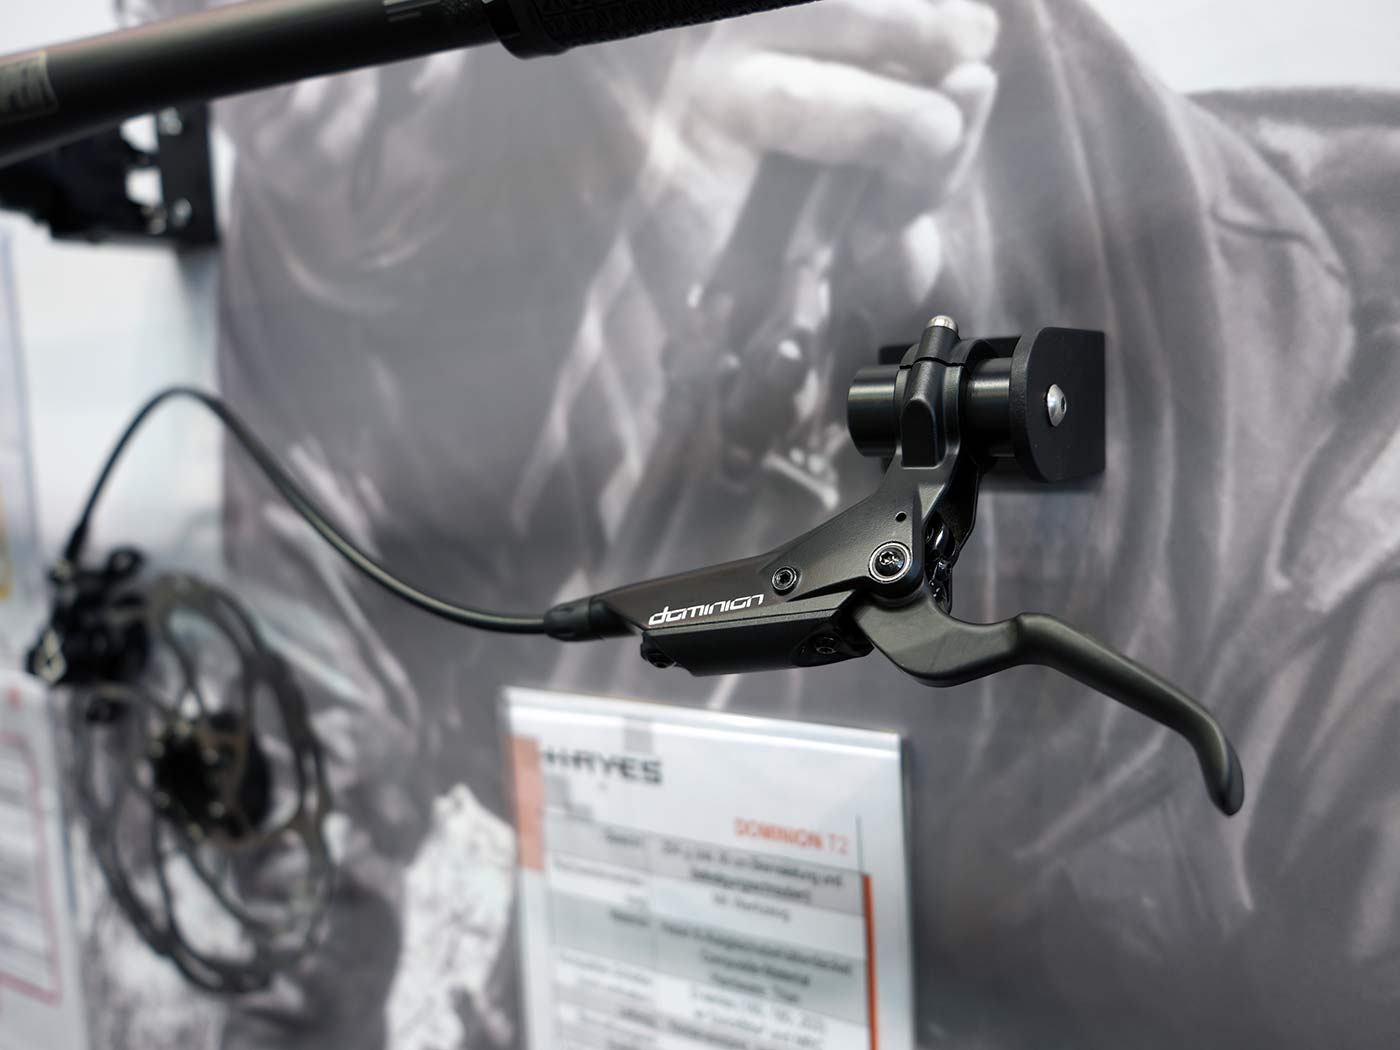 hayes dominion mtb brakes will come in black for A2 and A4 models